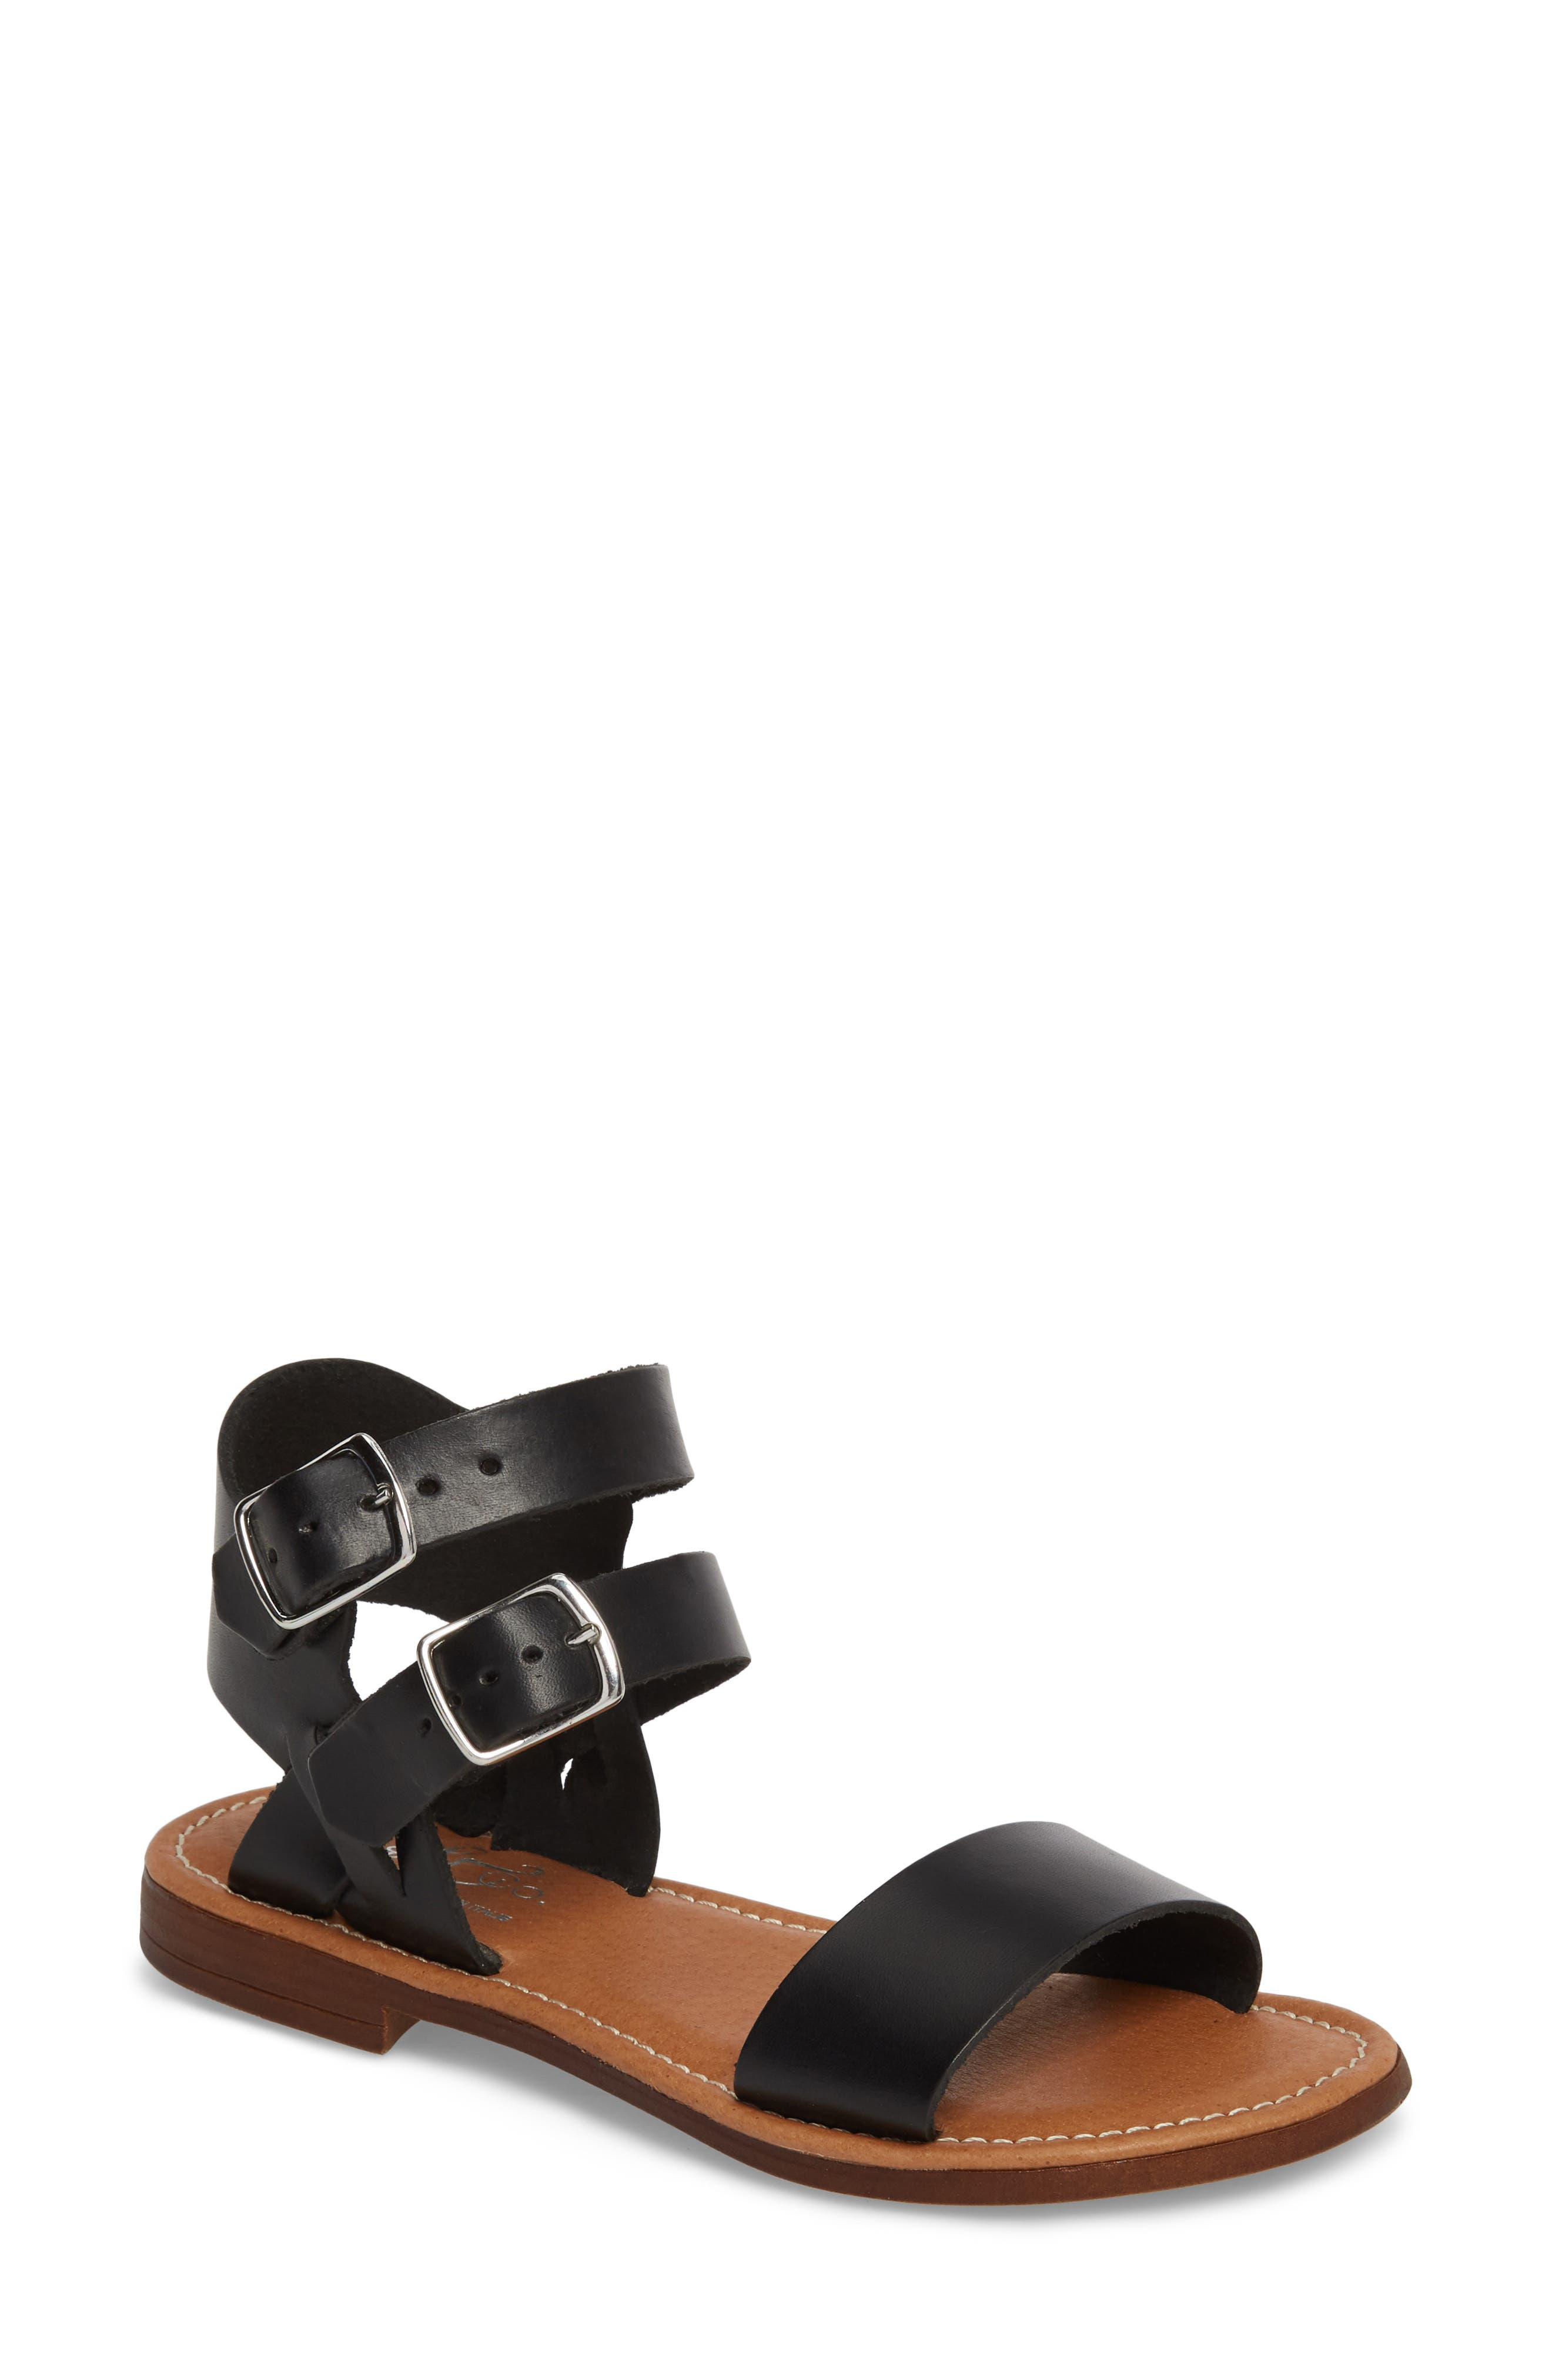 Ida Mid Top Sandal,                         Main,                         color, BLACK VACCHETTA LEATHER